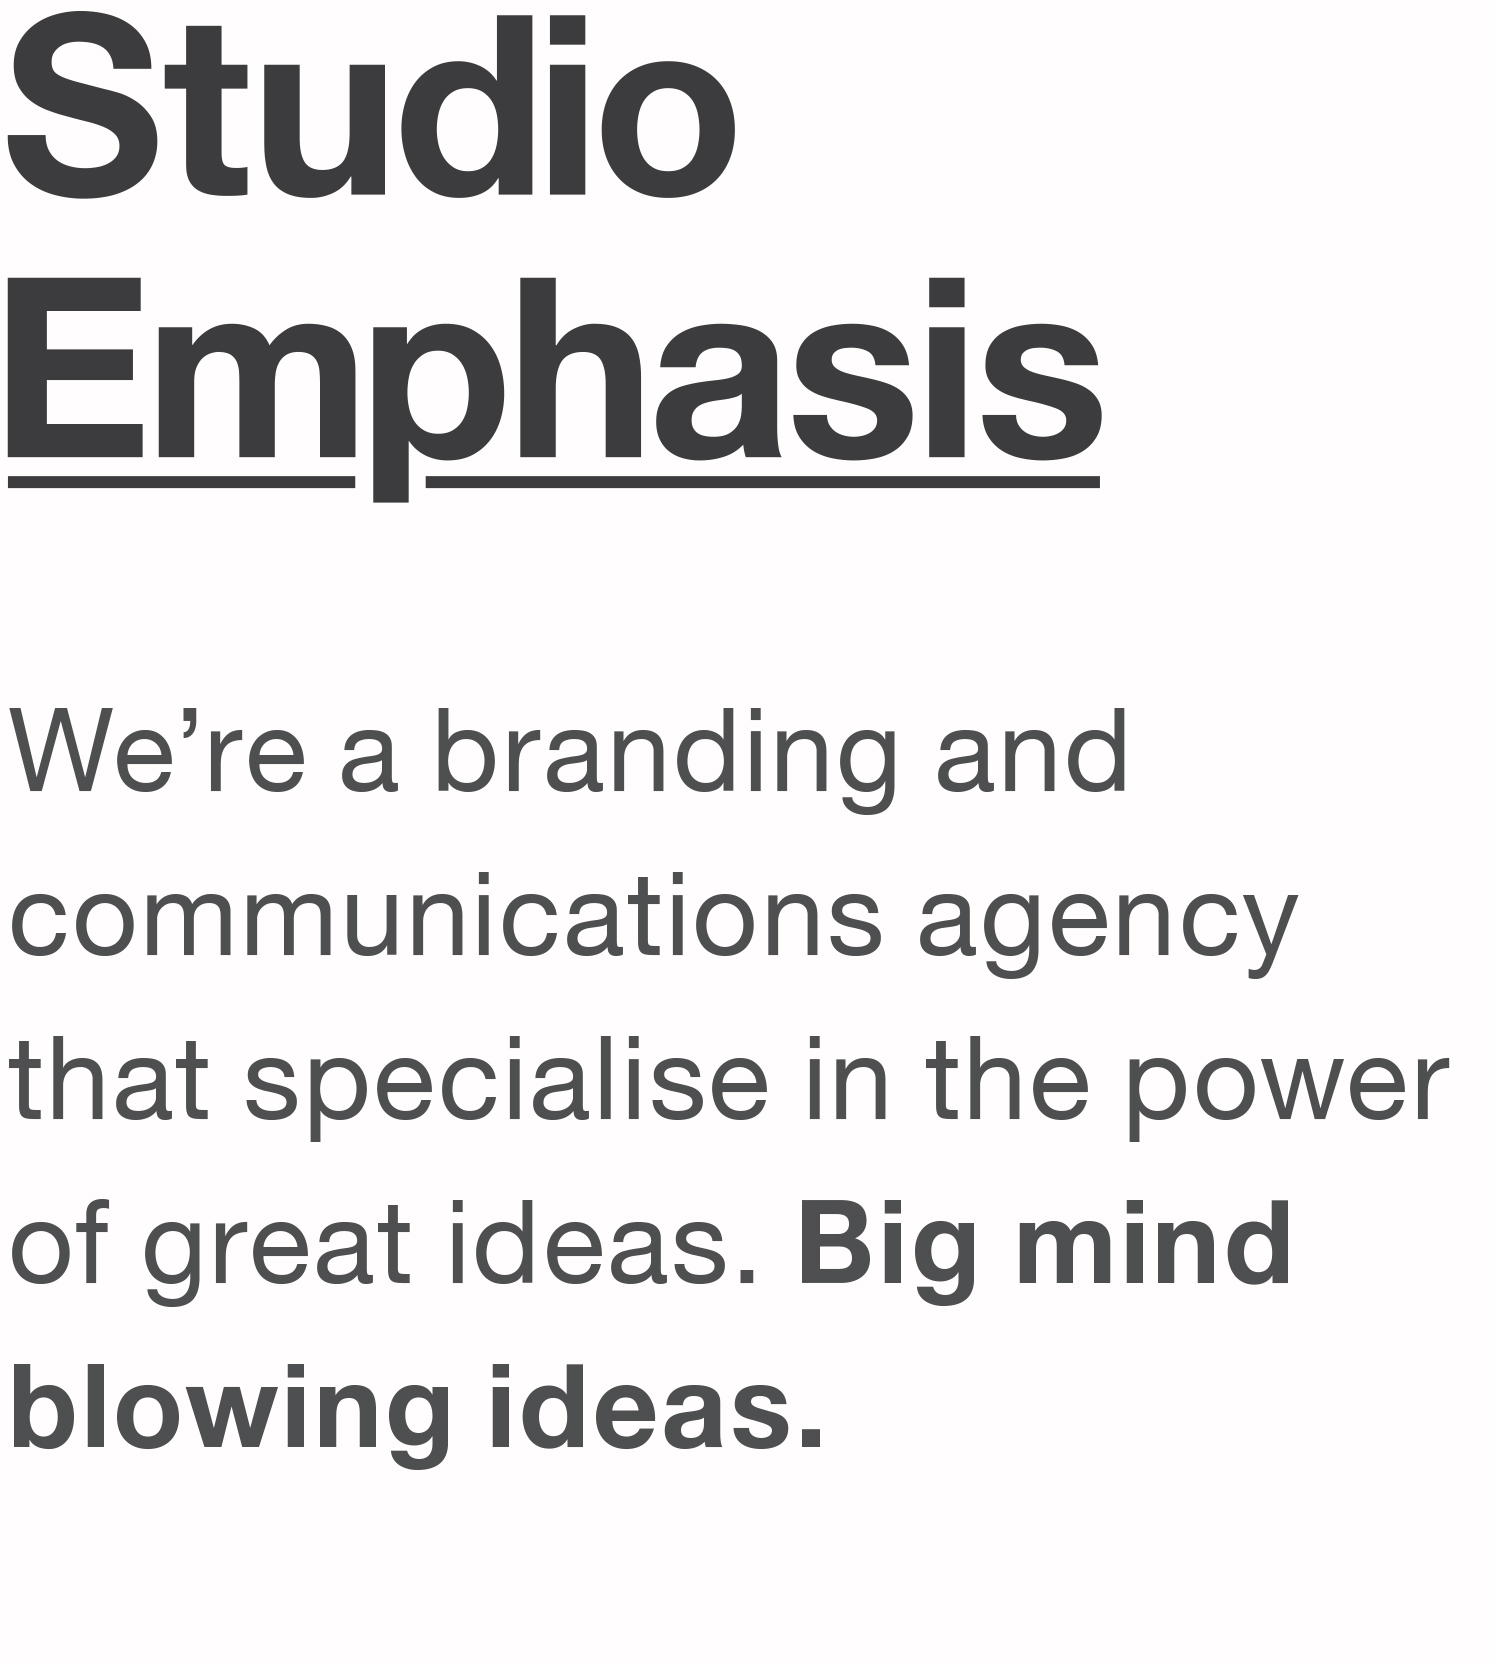 Studio Emphasis